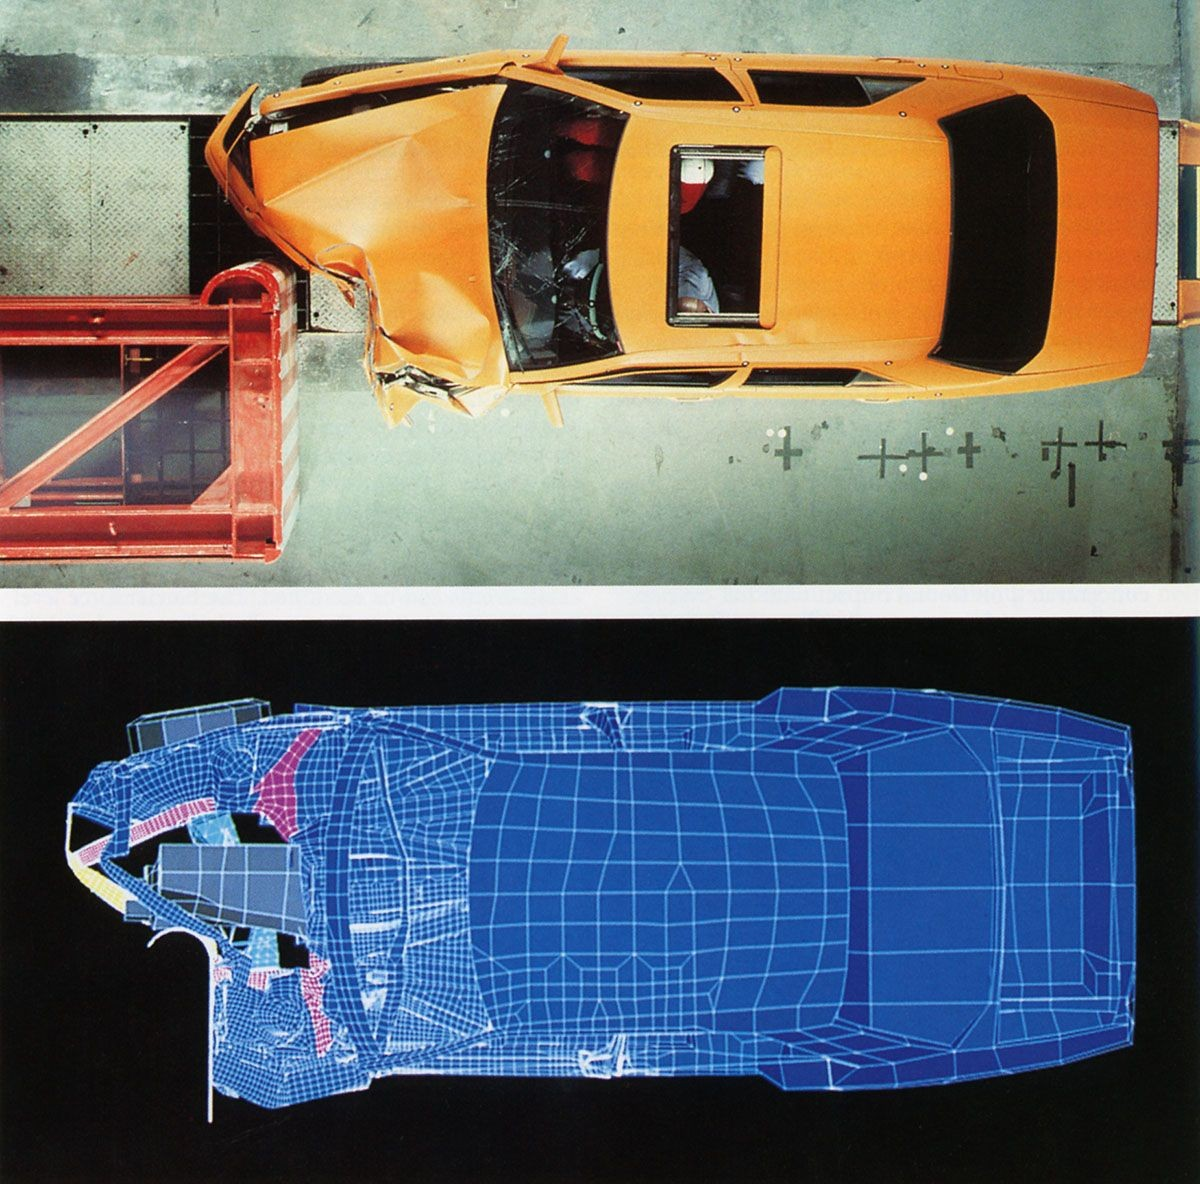 Real and simulated crash test. Simulation performed on Cray supercomputer